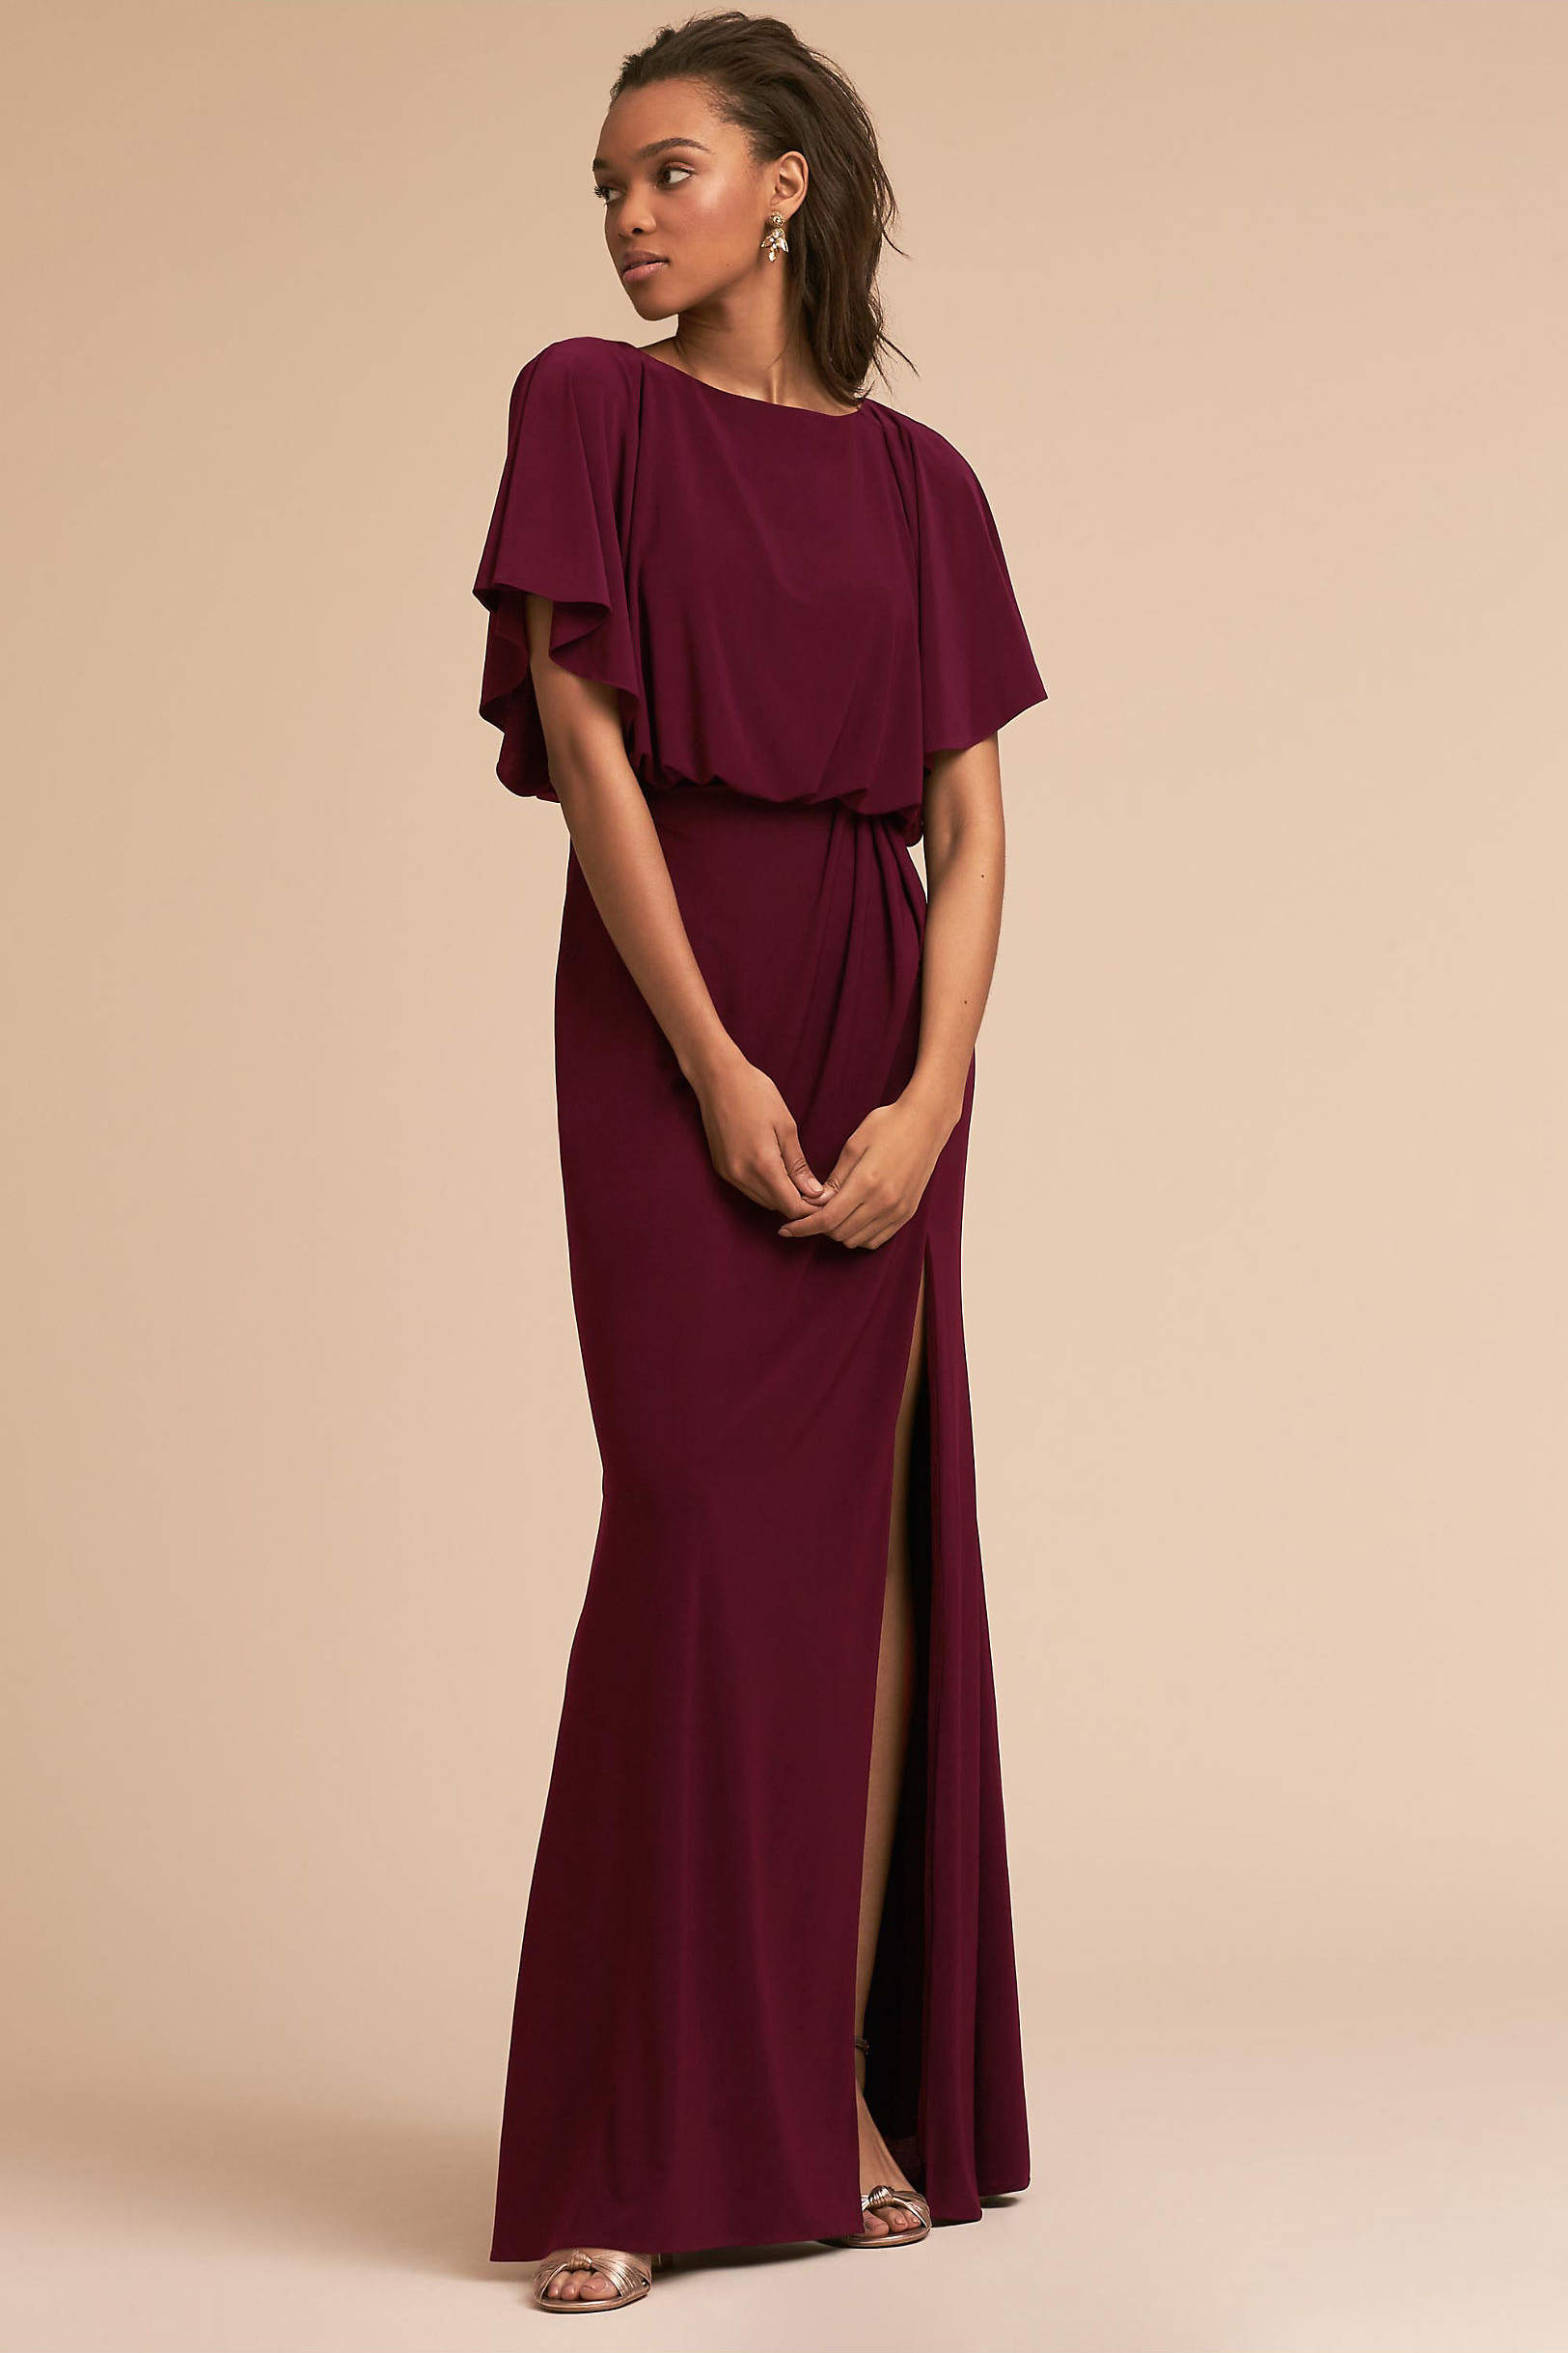 Burgundy Flutter Short Sleeves Sheath Long Chiffon Bridesmaid Dress with Slit